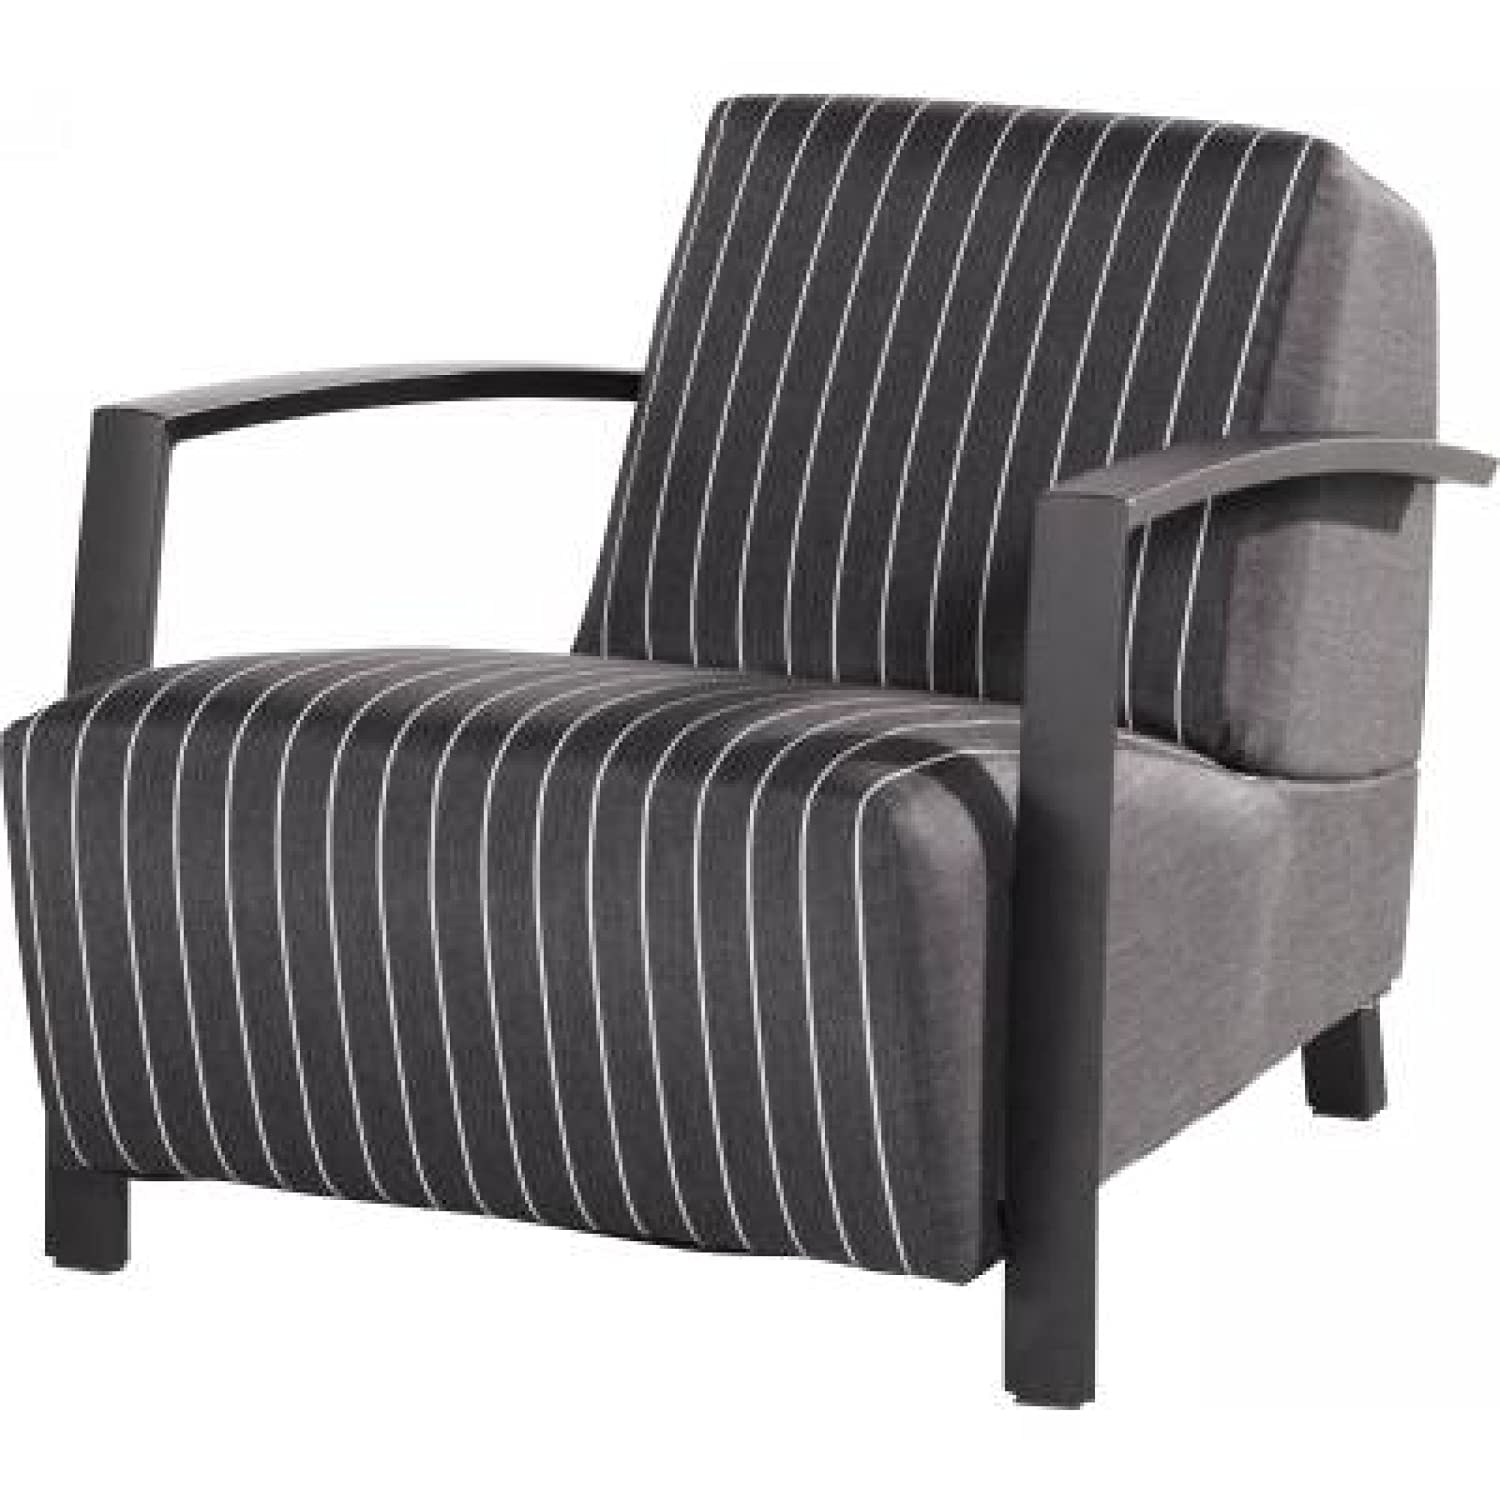 4Seasons Outdoor Hugo Sessel living schwarz gestreift